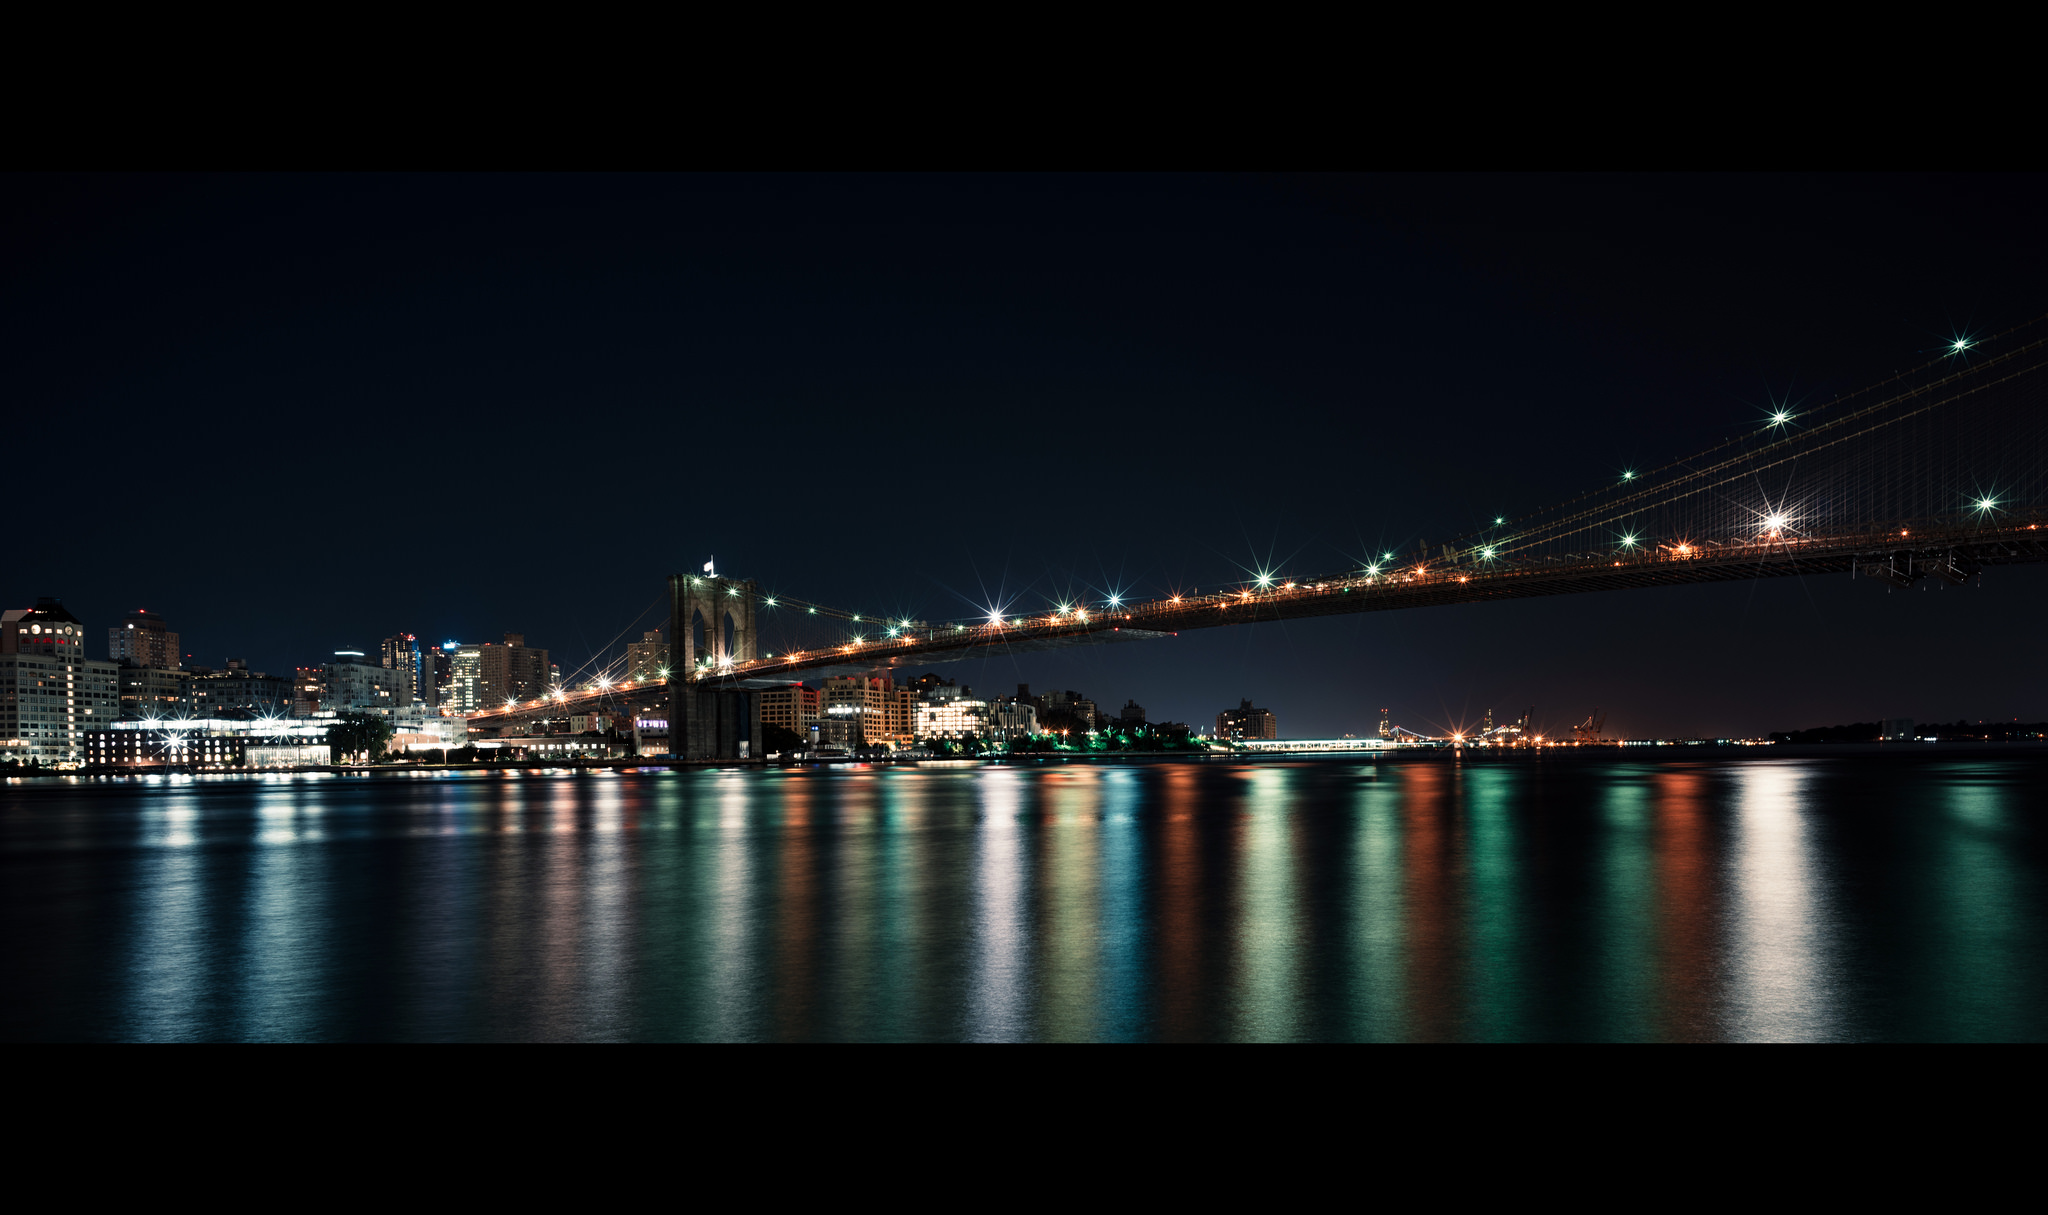 (Sony ILCE-7RM2 + Zeiss Loxia 21mm f/2.8) ISO 100 - Did a 30 second long exposure for this one, looking at Brooklyn from the South Street Seaport